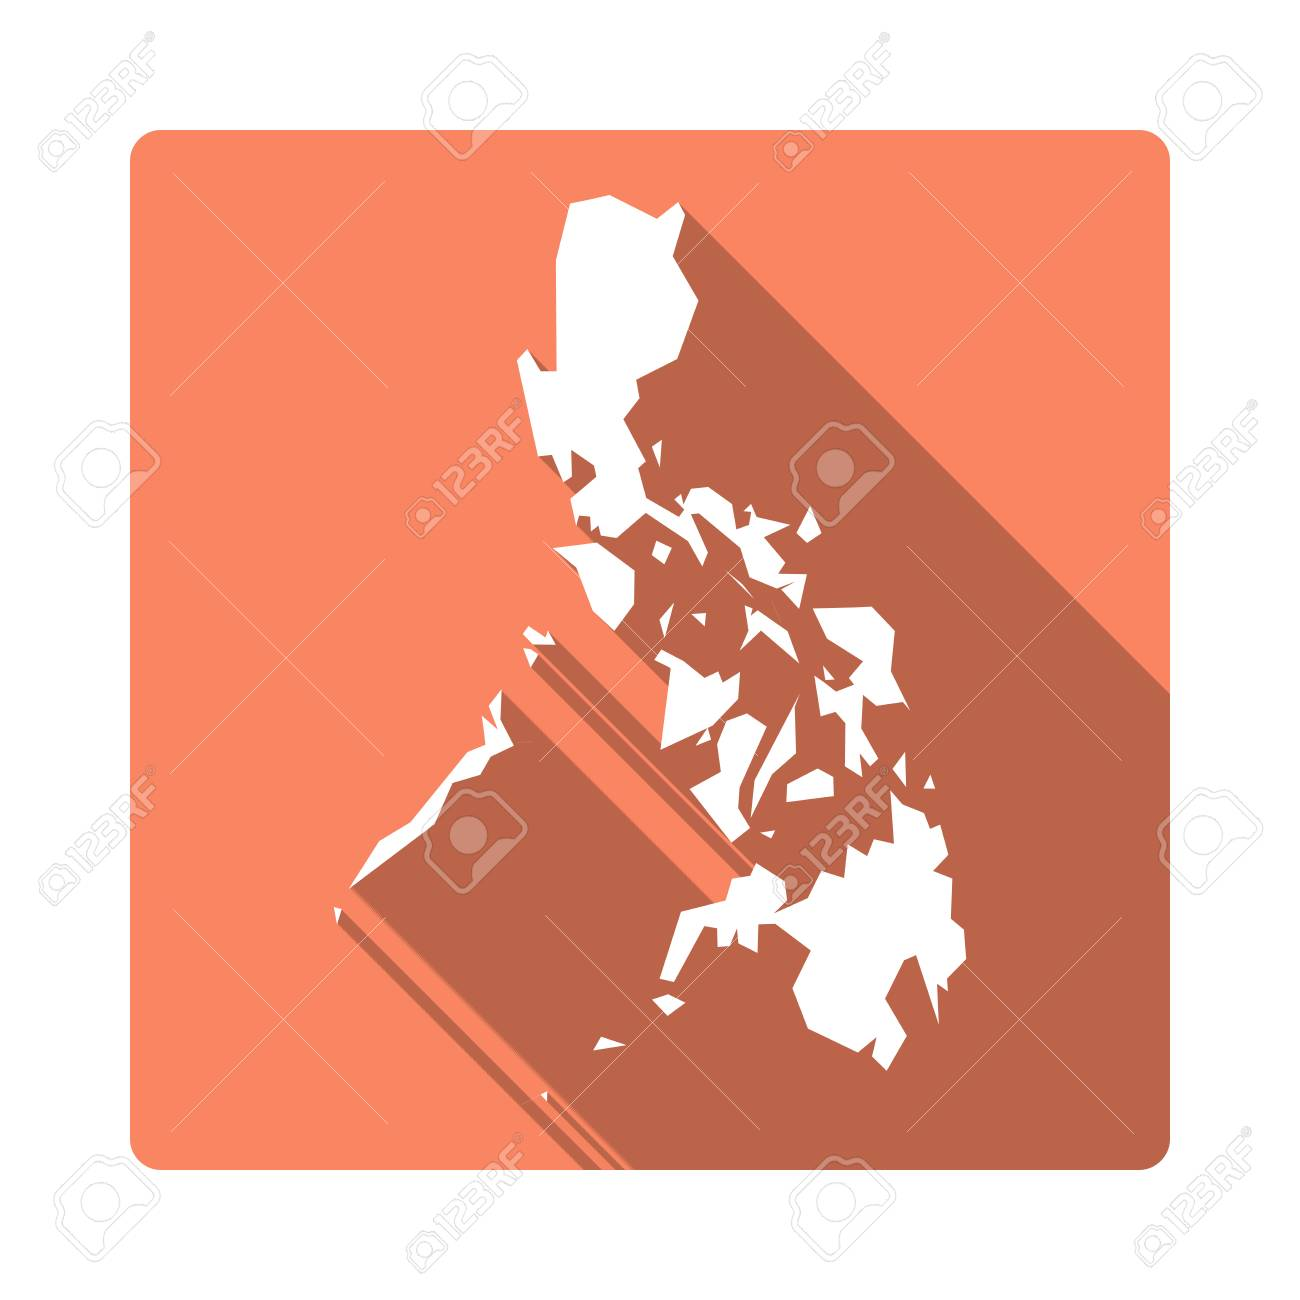 Vector Philippines Map Button  Long Shadow Style Philippines     Vector   Vector Philippines Map Button  Long Shadow Style Philippines Map  Square Icon Isolated on White Background  Flat Orange Country Badge